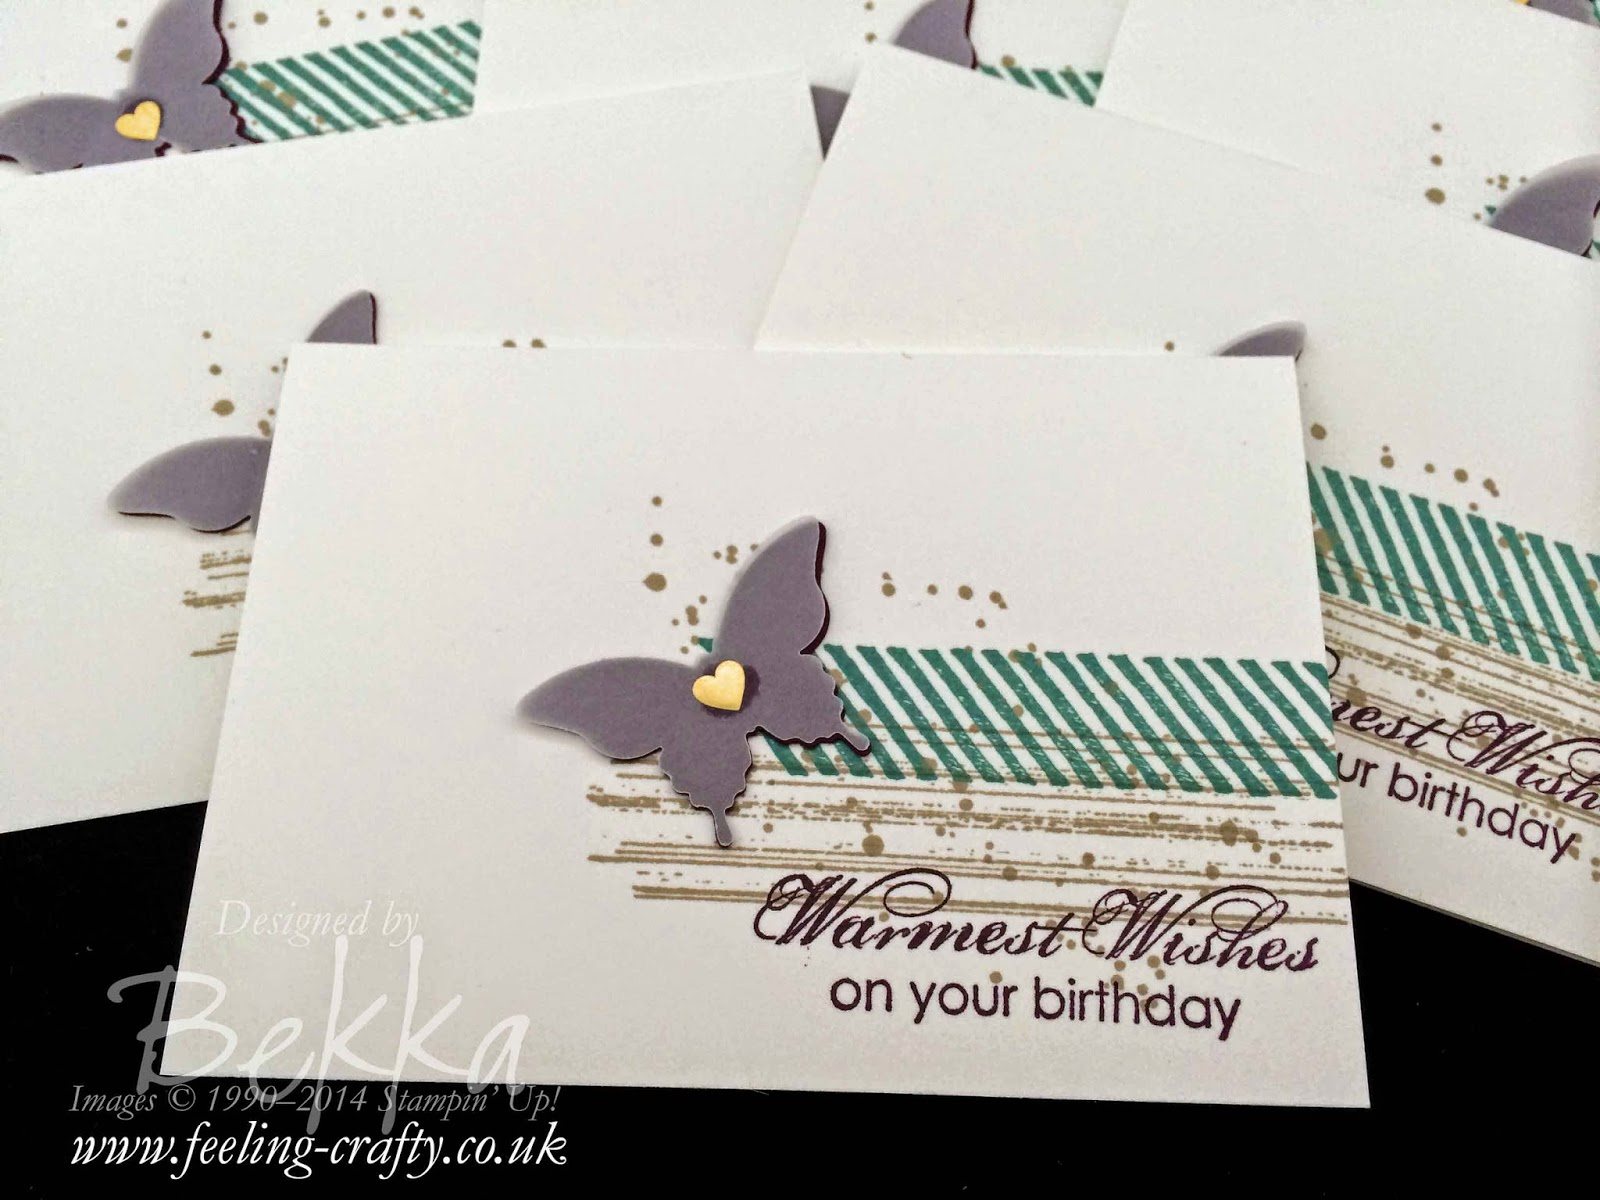 Simple Birthday Butterfly Cards using Stampin' Up! Supplies which you can get here